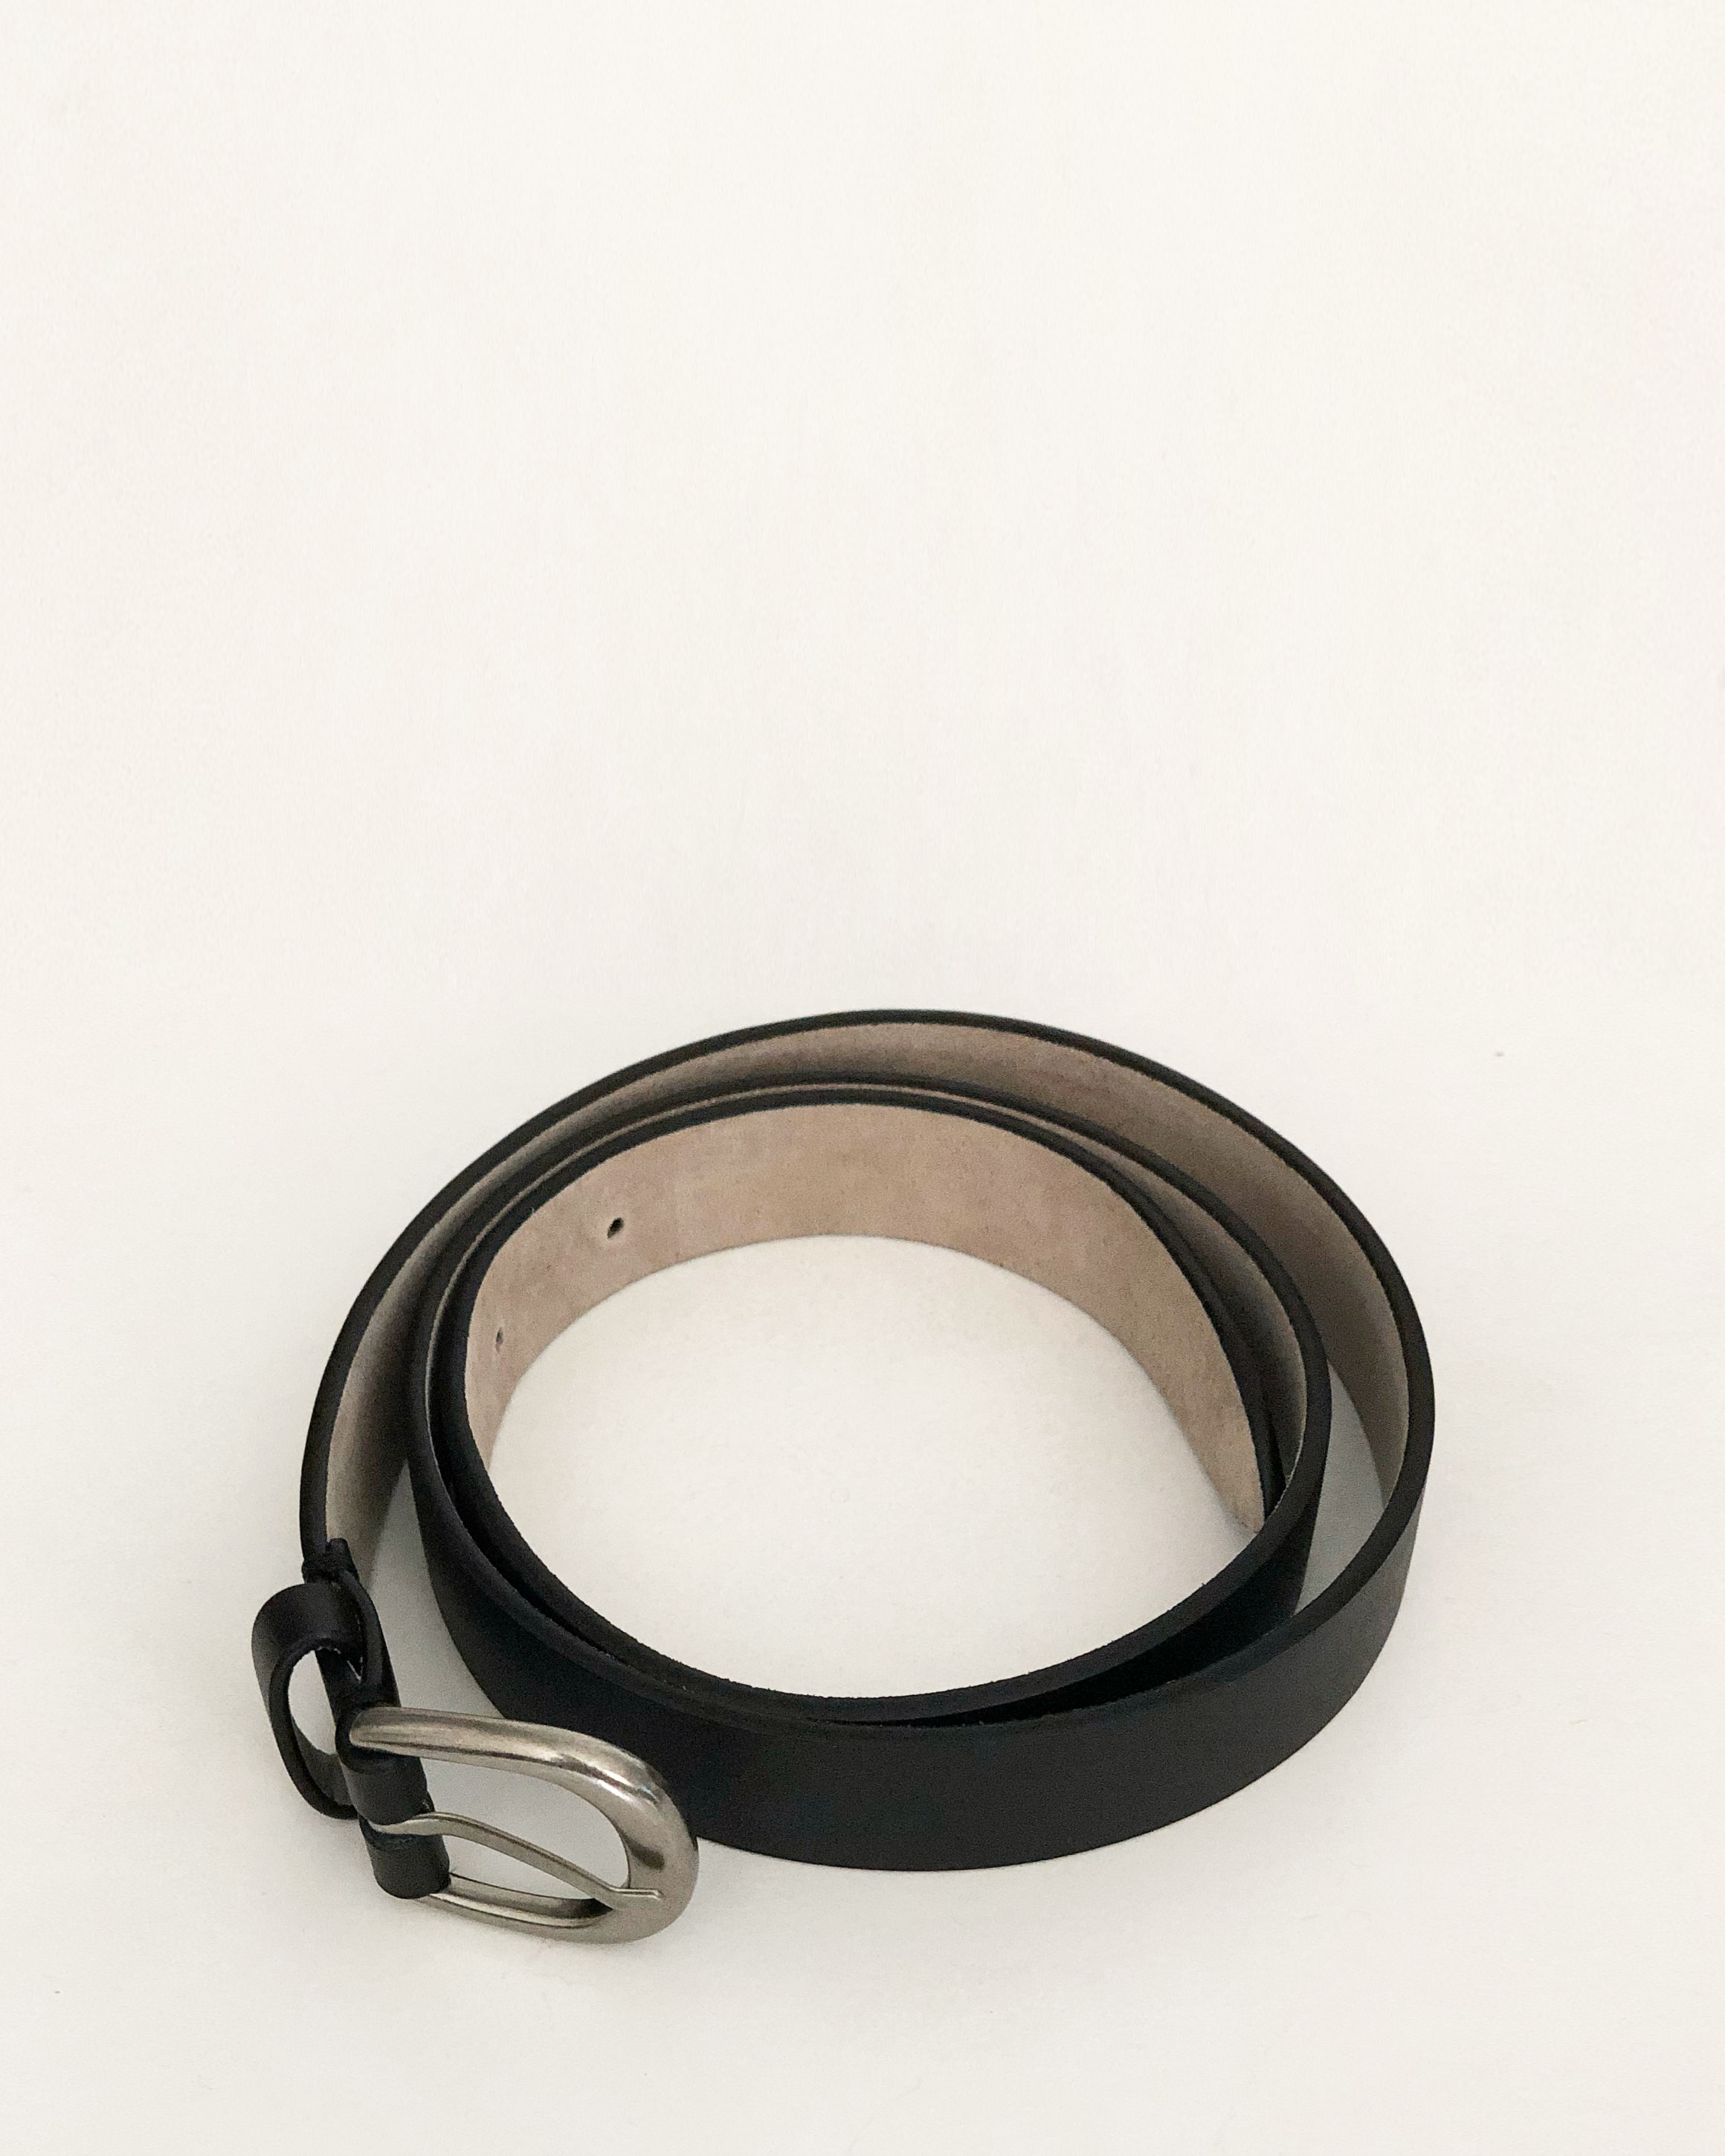 Belt_Antique silver